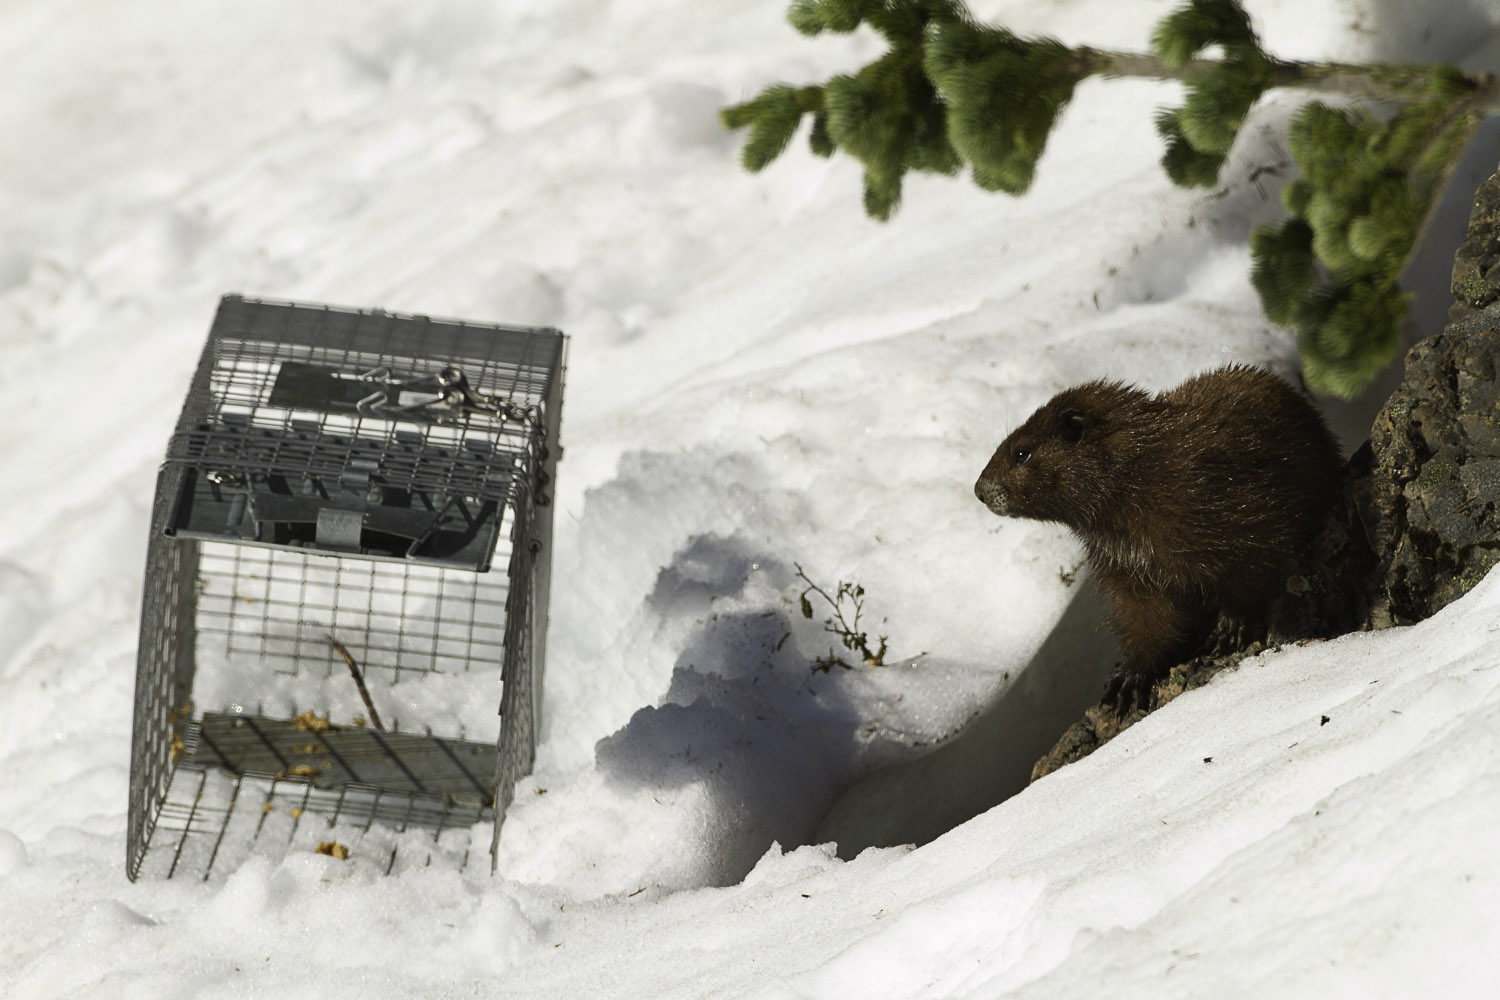 https://marmots.org/Rescue%20Marmots